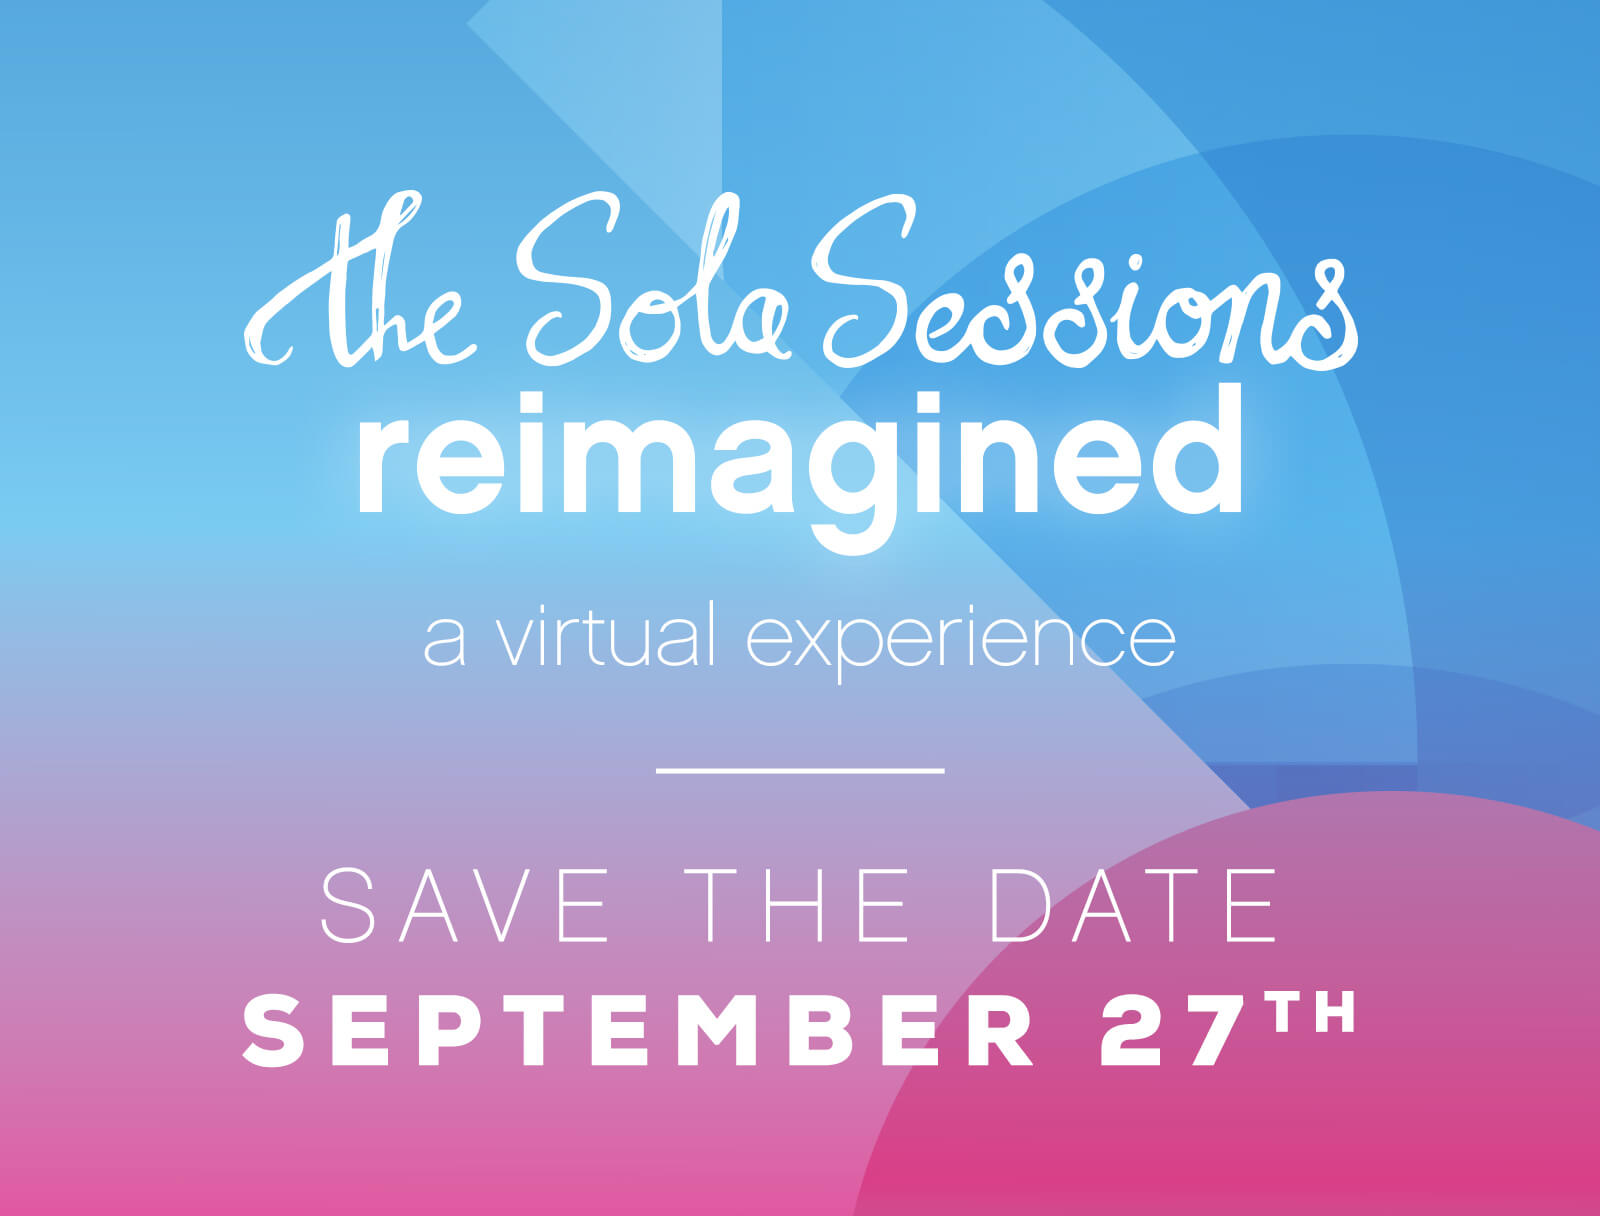 Solasessions reimagined homepage button 800x608